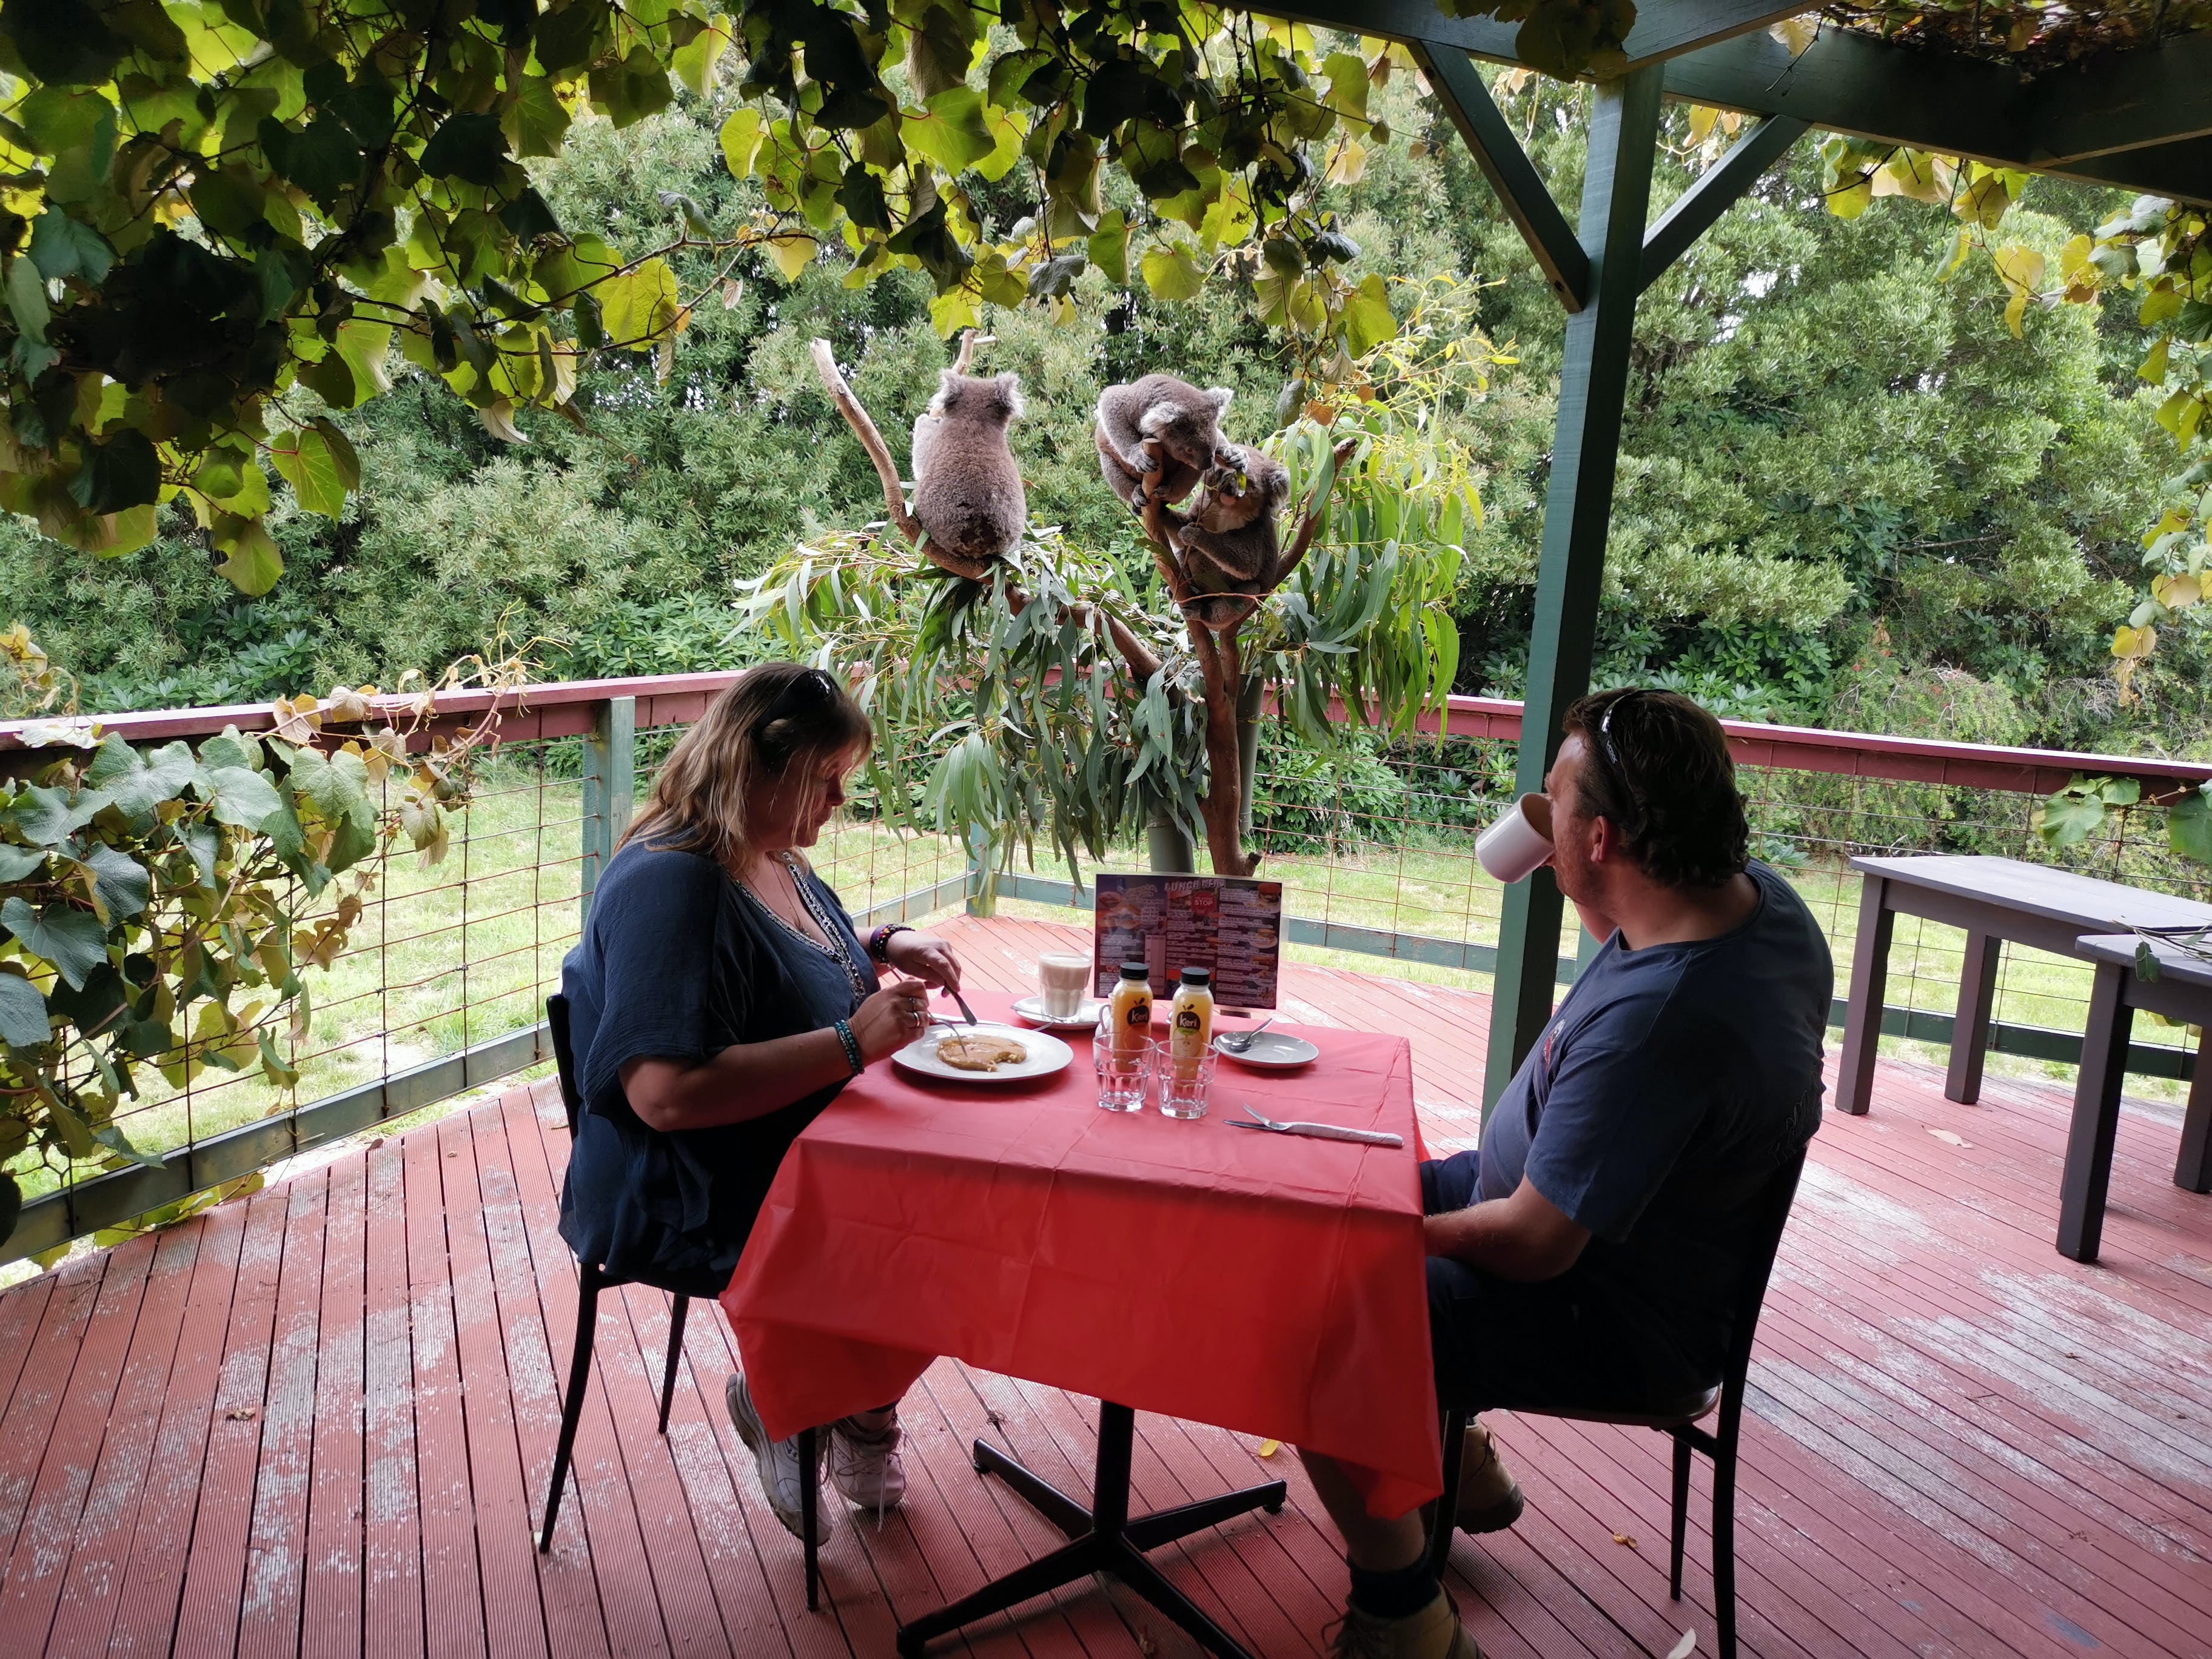 The Aussie Stop offering Breakfast with Koalas - Accommodation Sunshine Coast